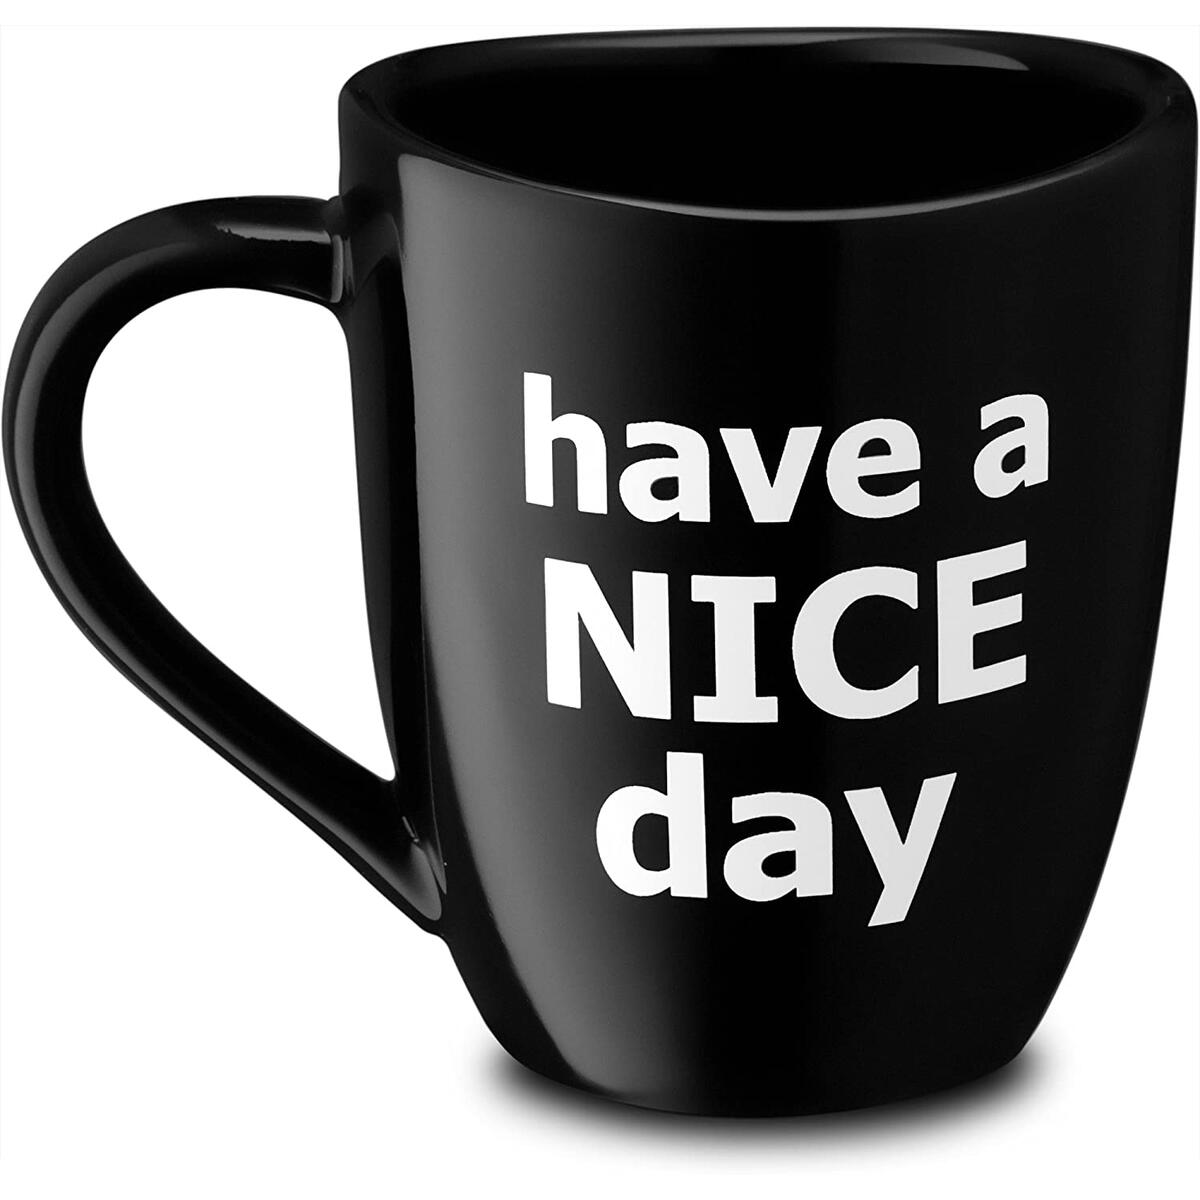 Have a Nice Day Funny Coffee Mug, Funny Cup with Middle Finger on the Bottom 14 oz. (Black)